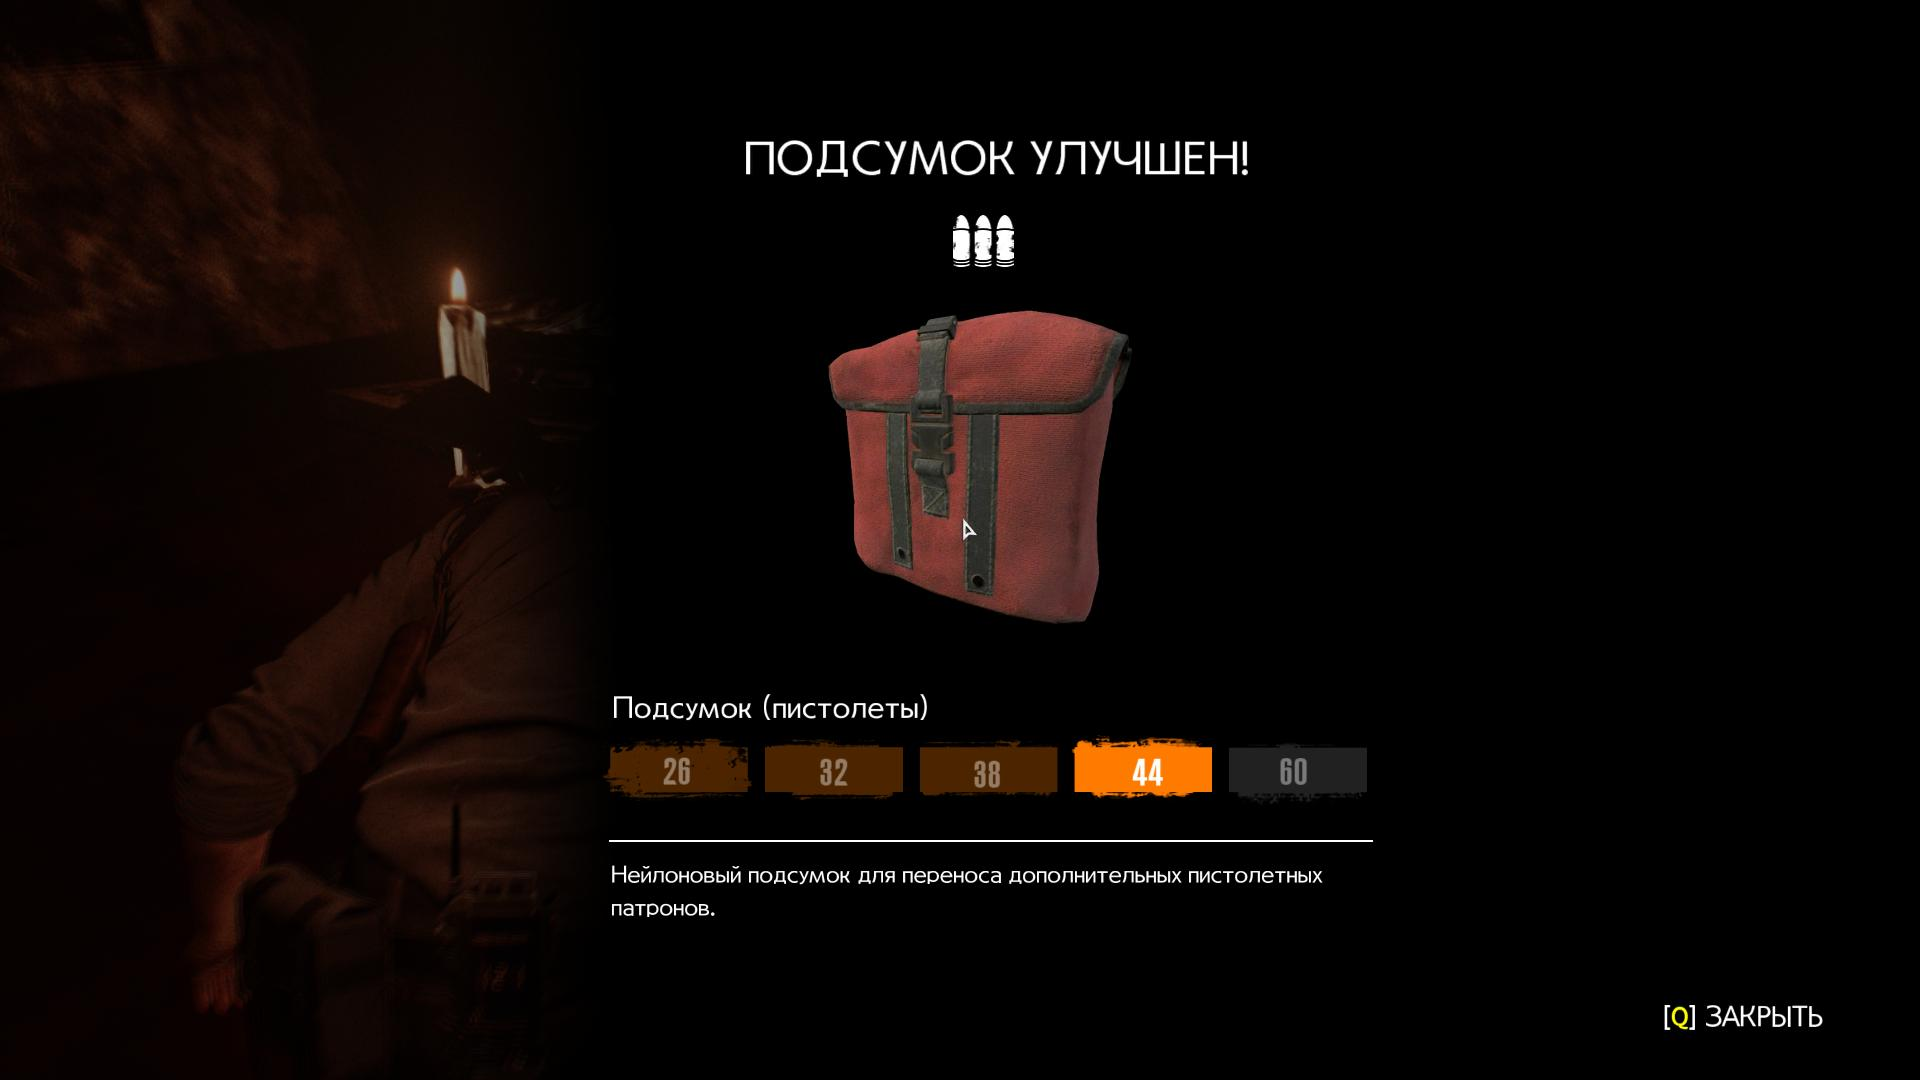 000255.Jpg - Evil Within 2, the